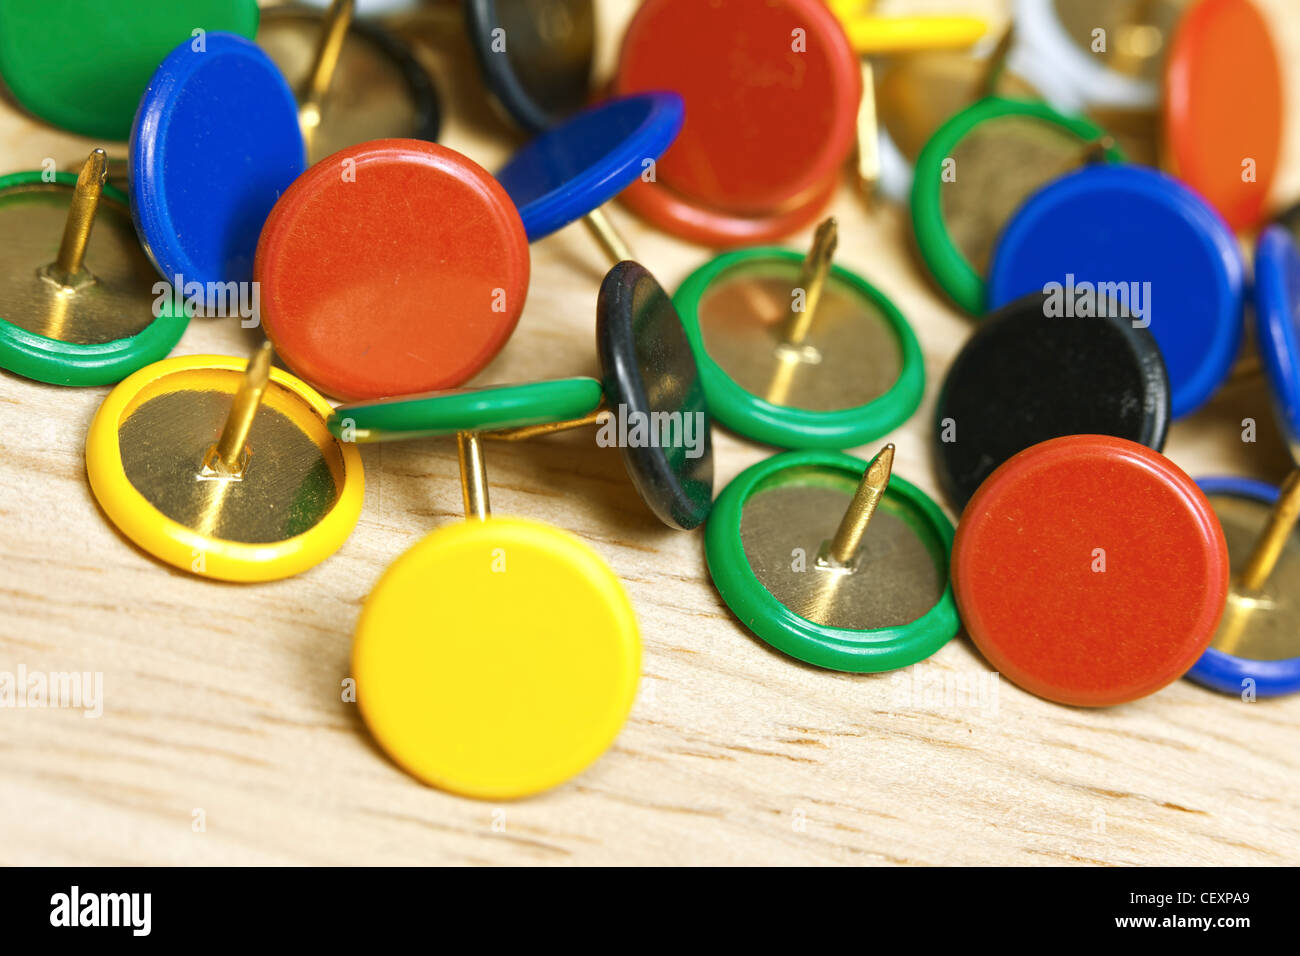 Pushpins on the table. Selective focus. - Stock Image